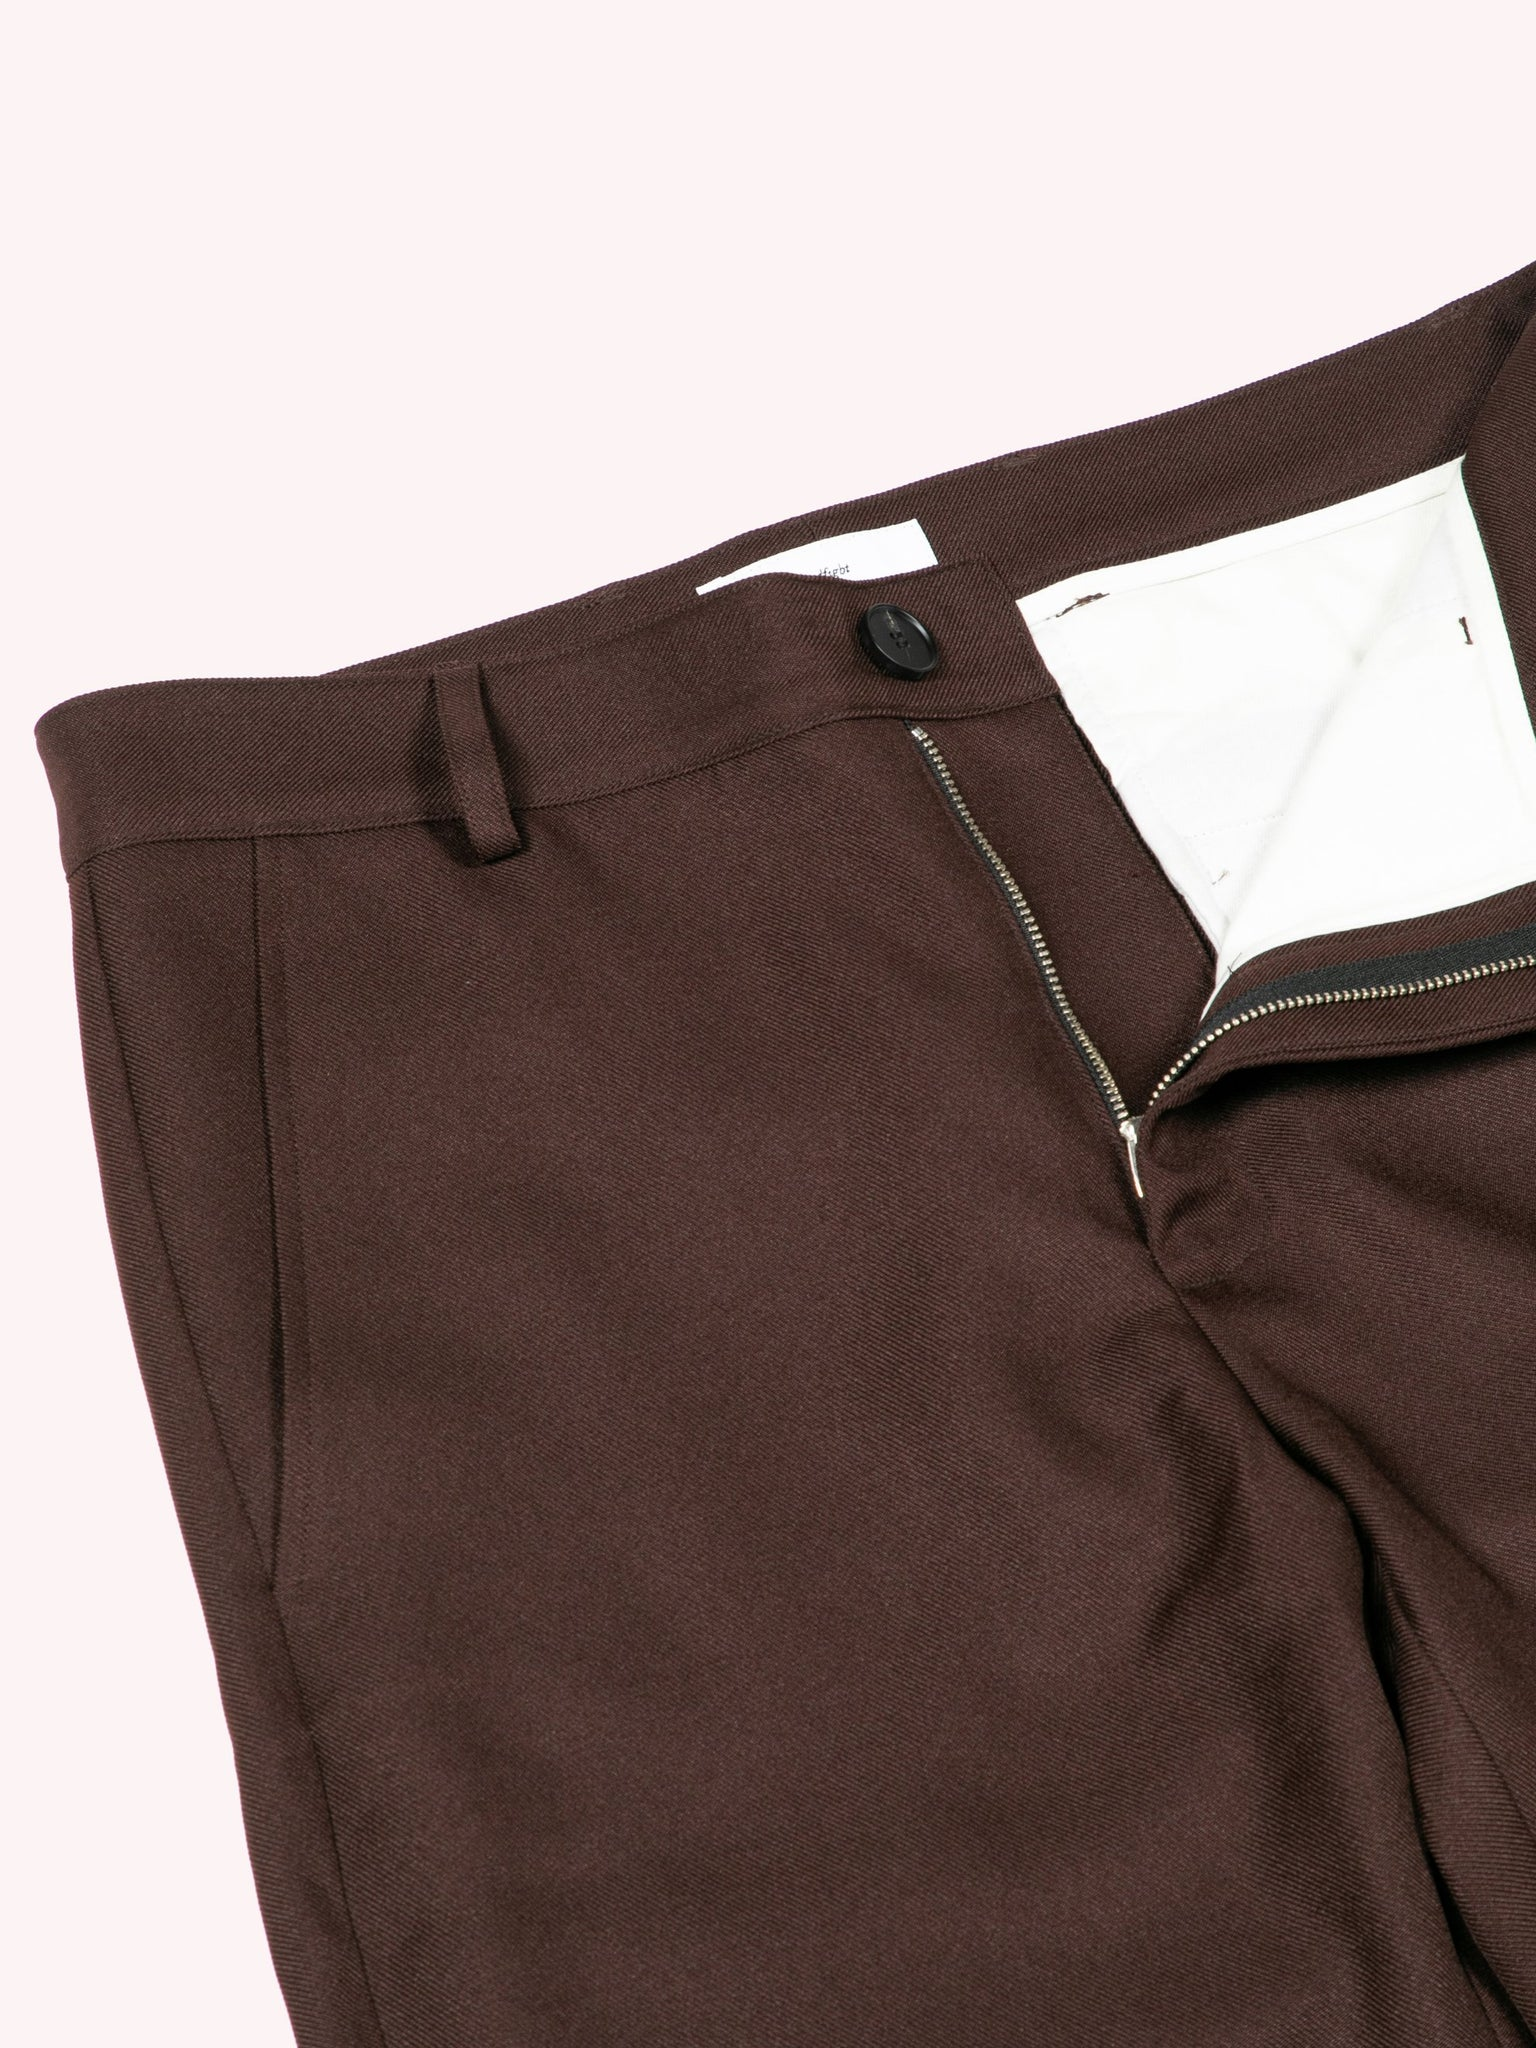 junction-trouser-1